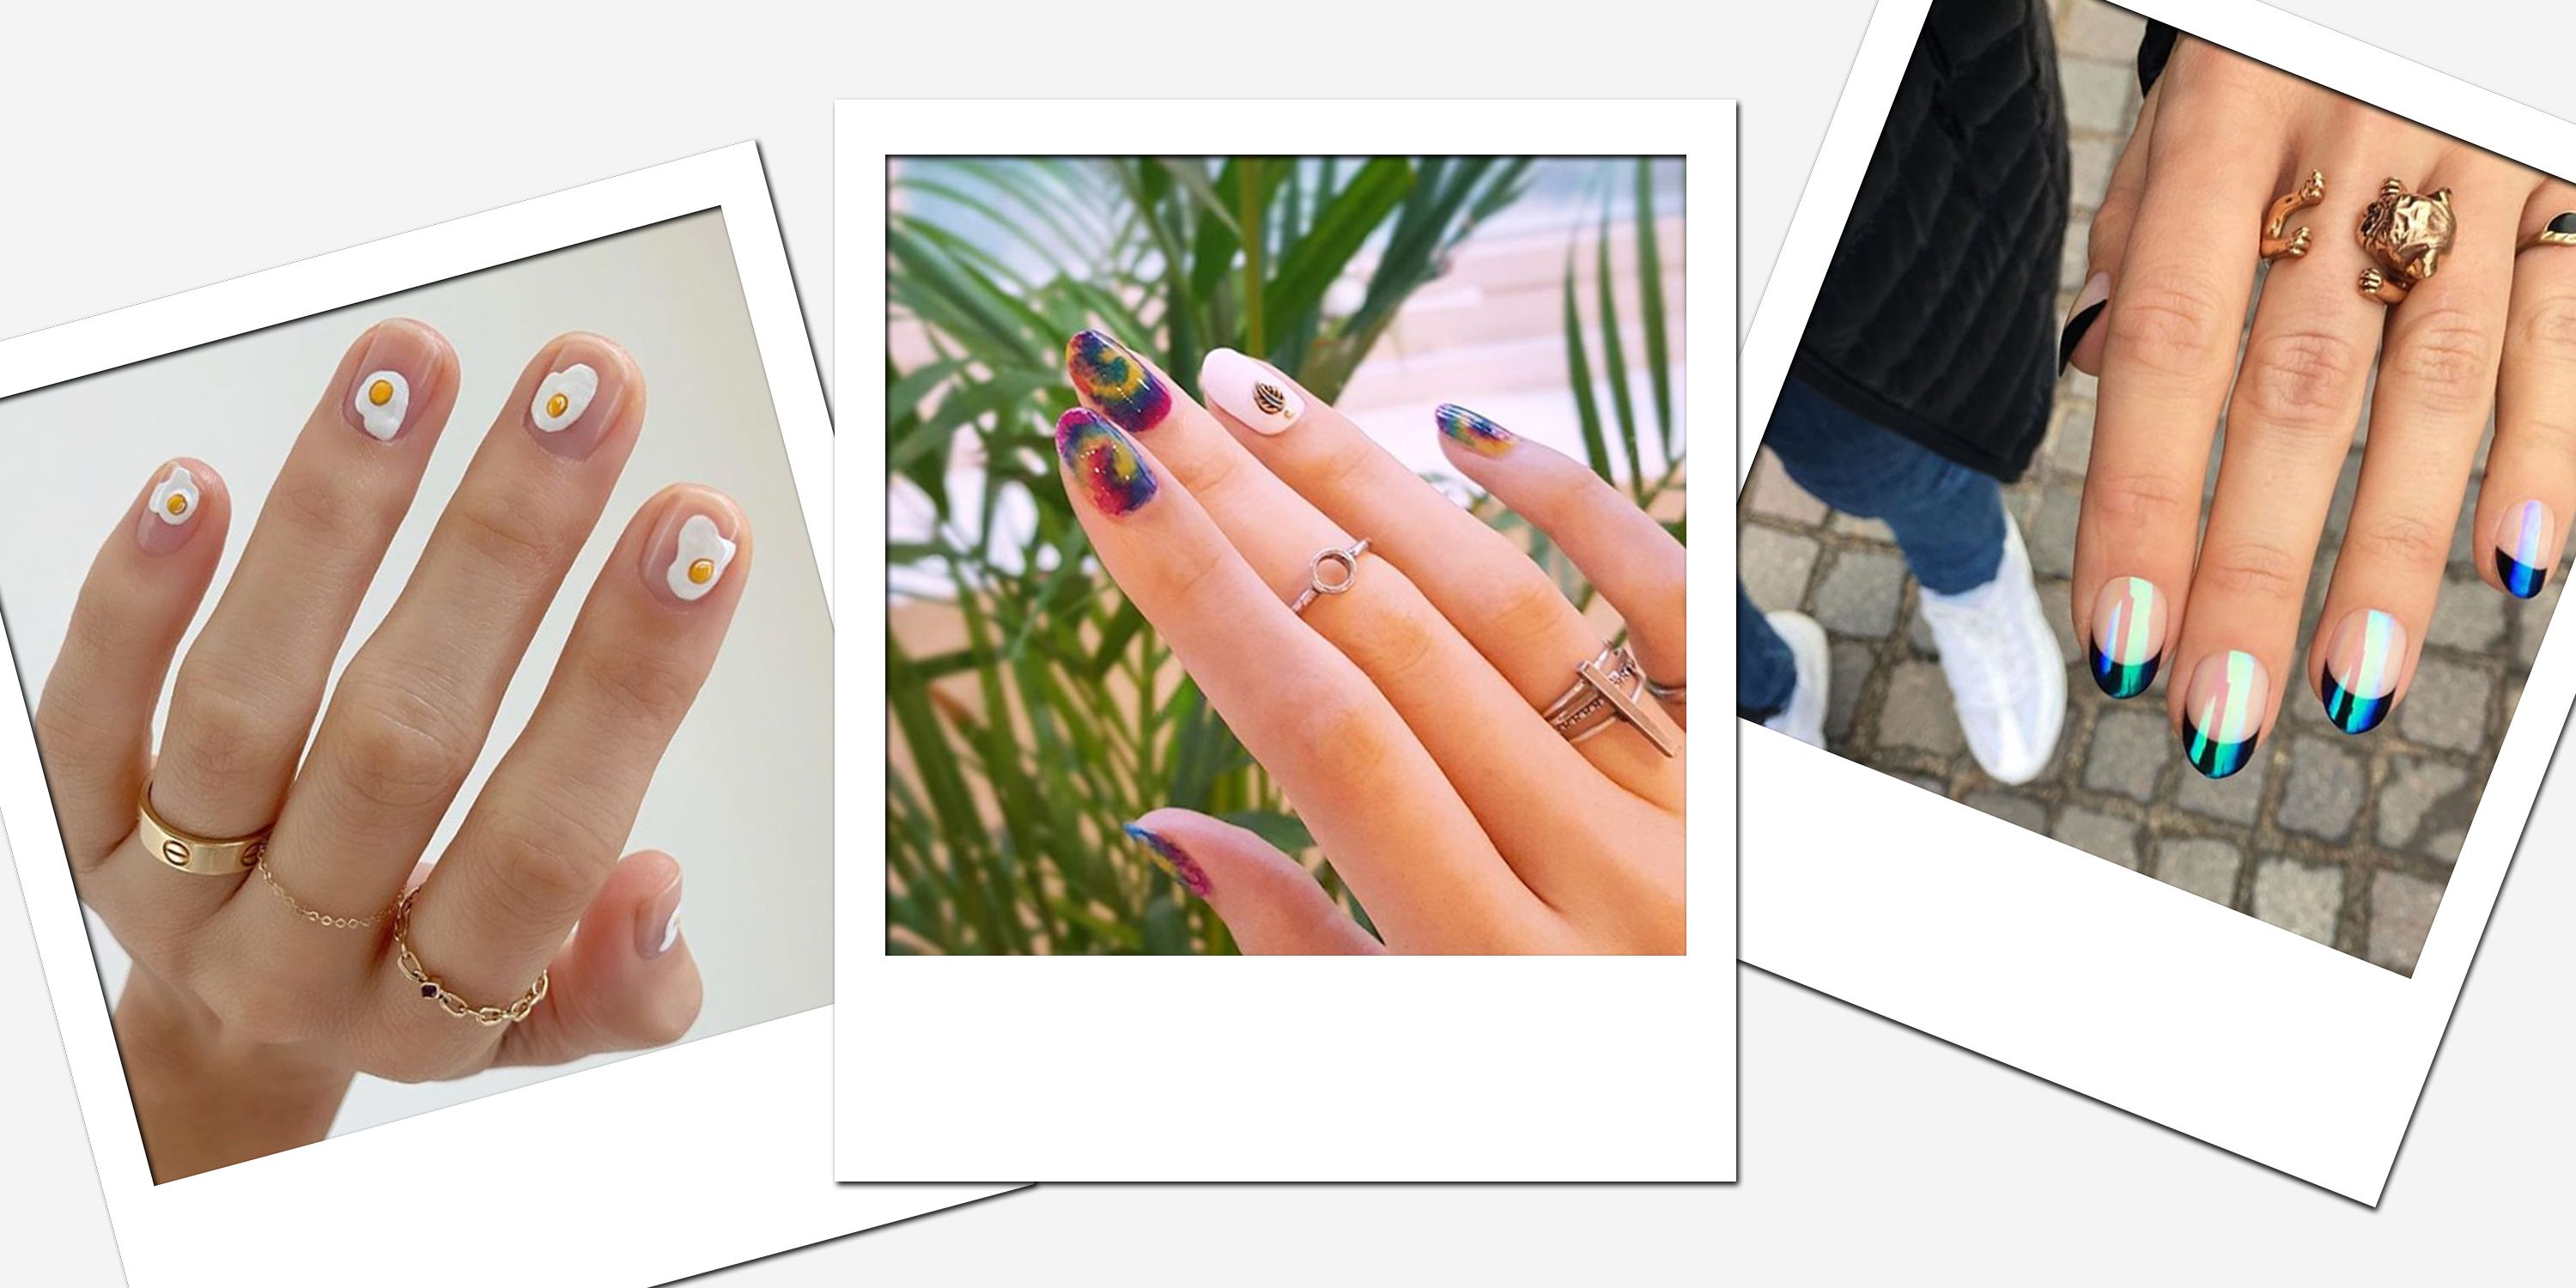 25 Top Nail Trends 2019 - The Biggest Nail Art and Manicure